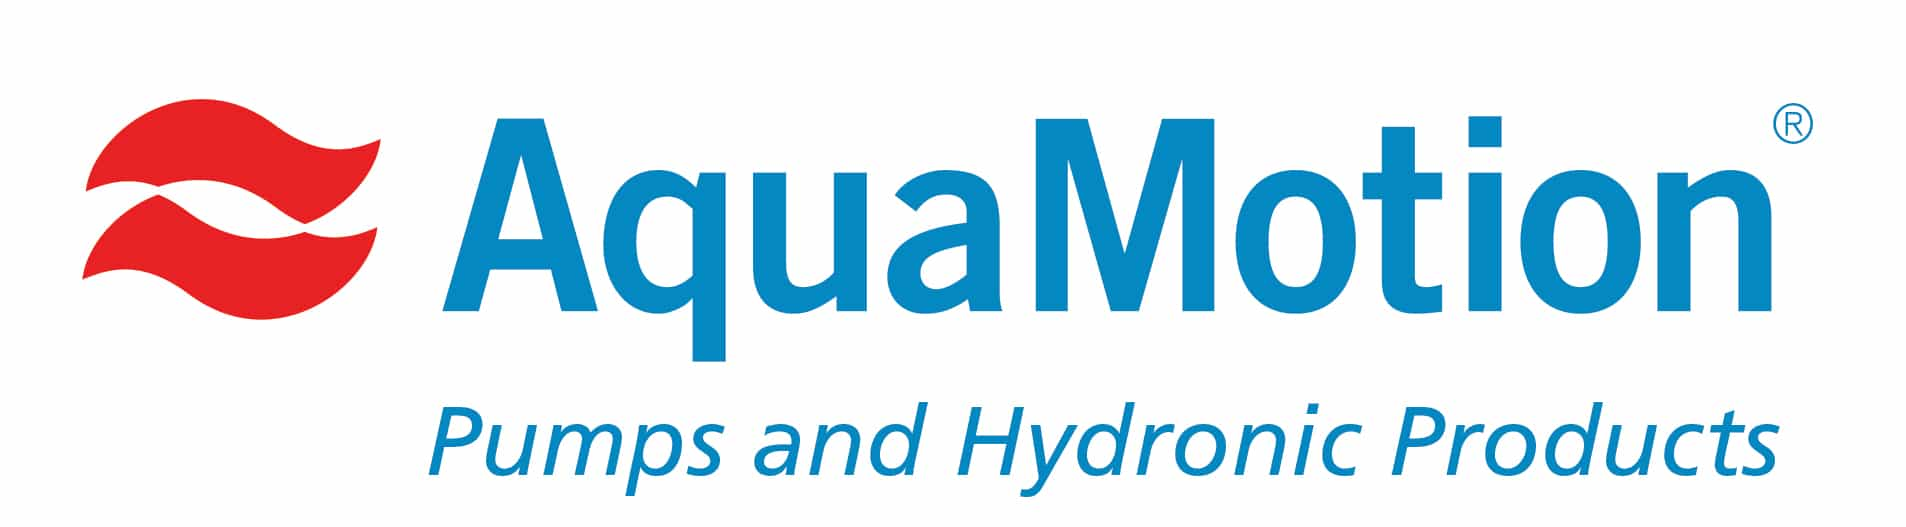 AquaMotion Logo w/tagline